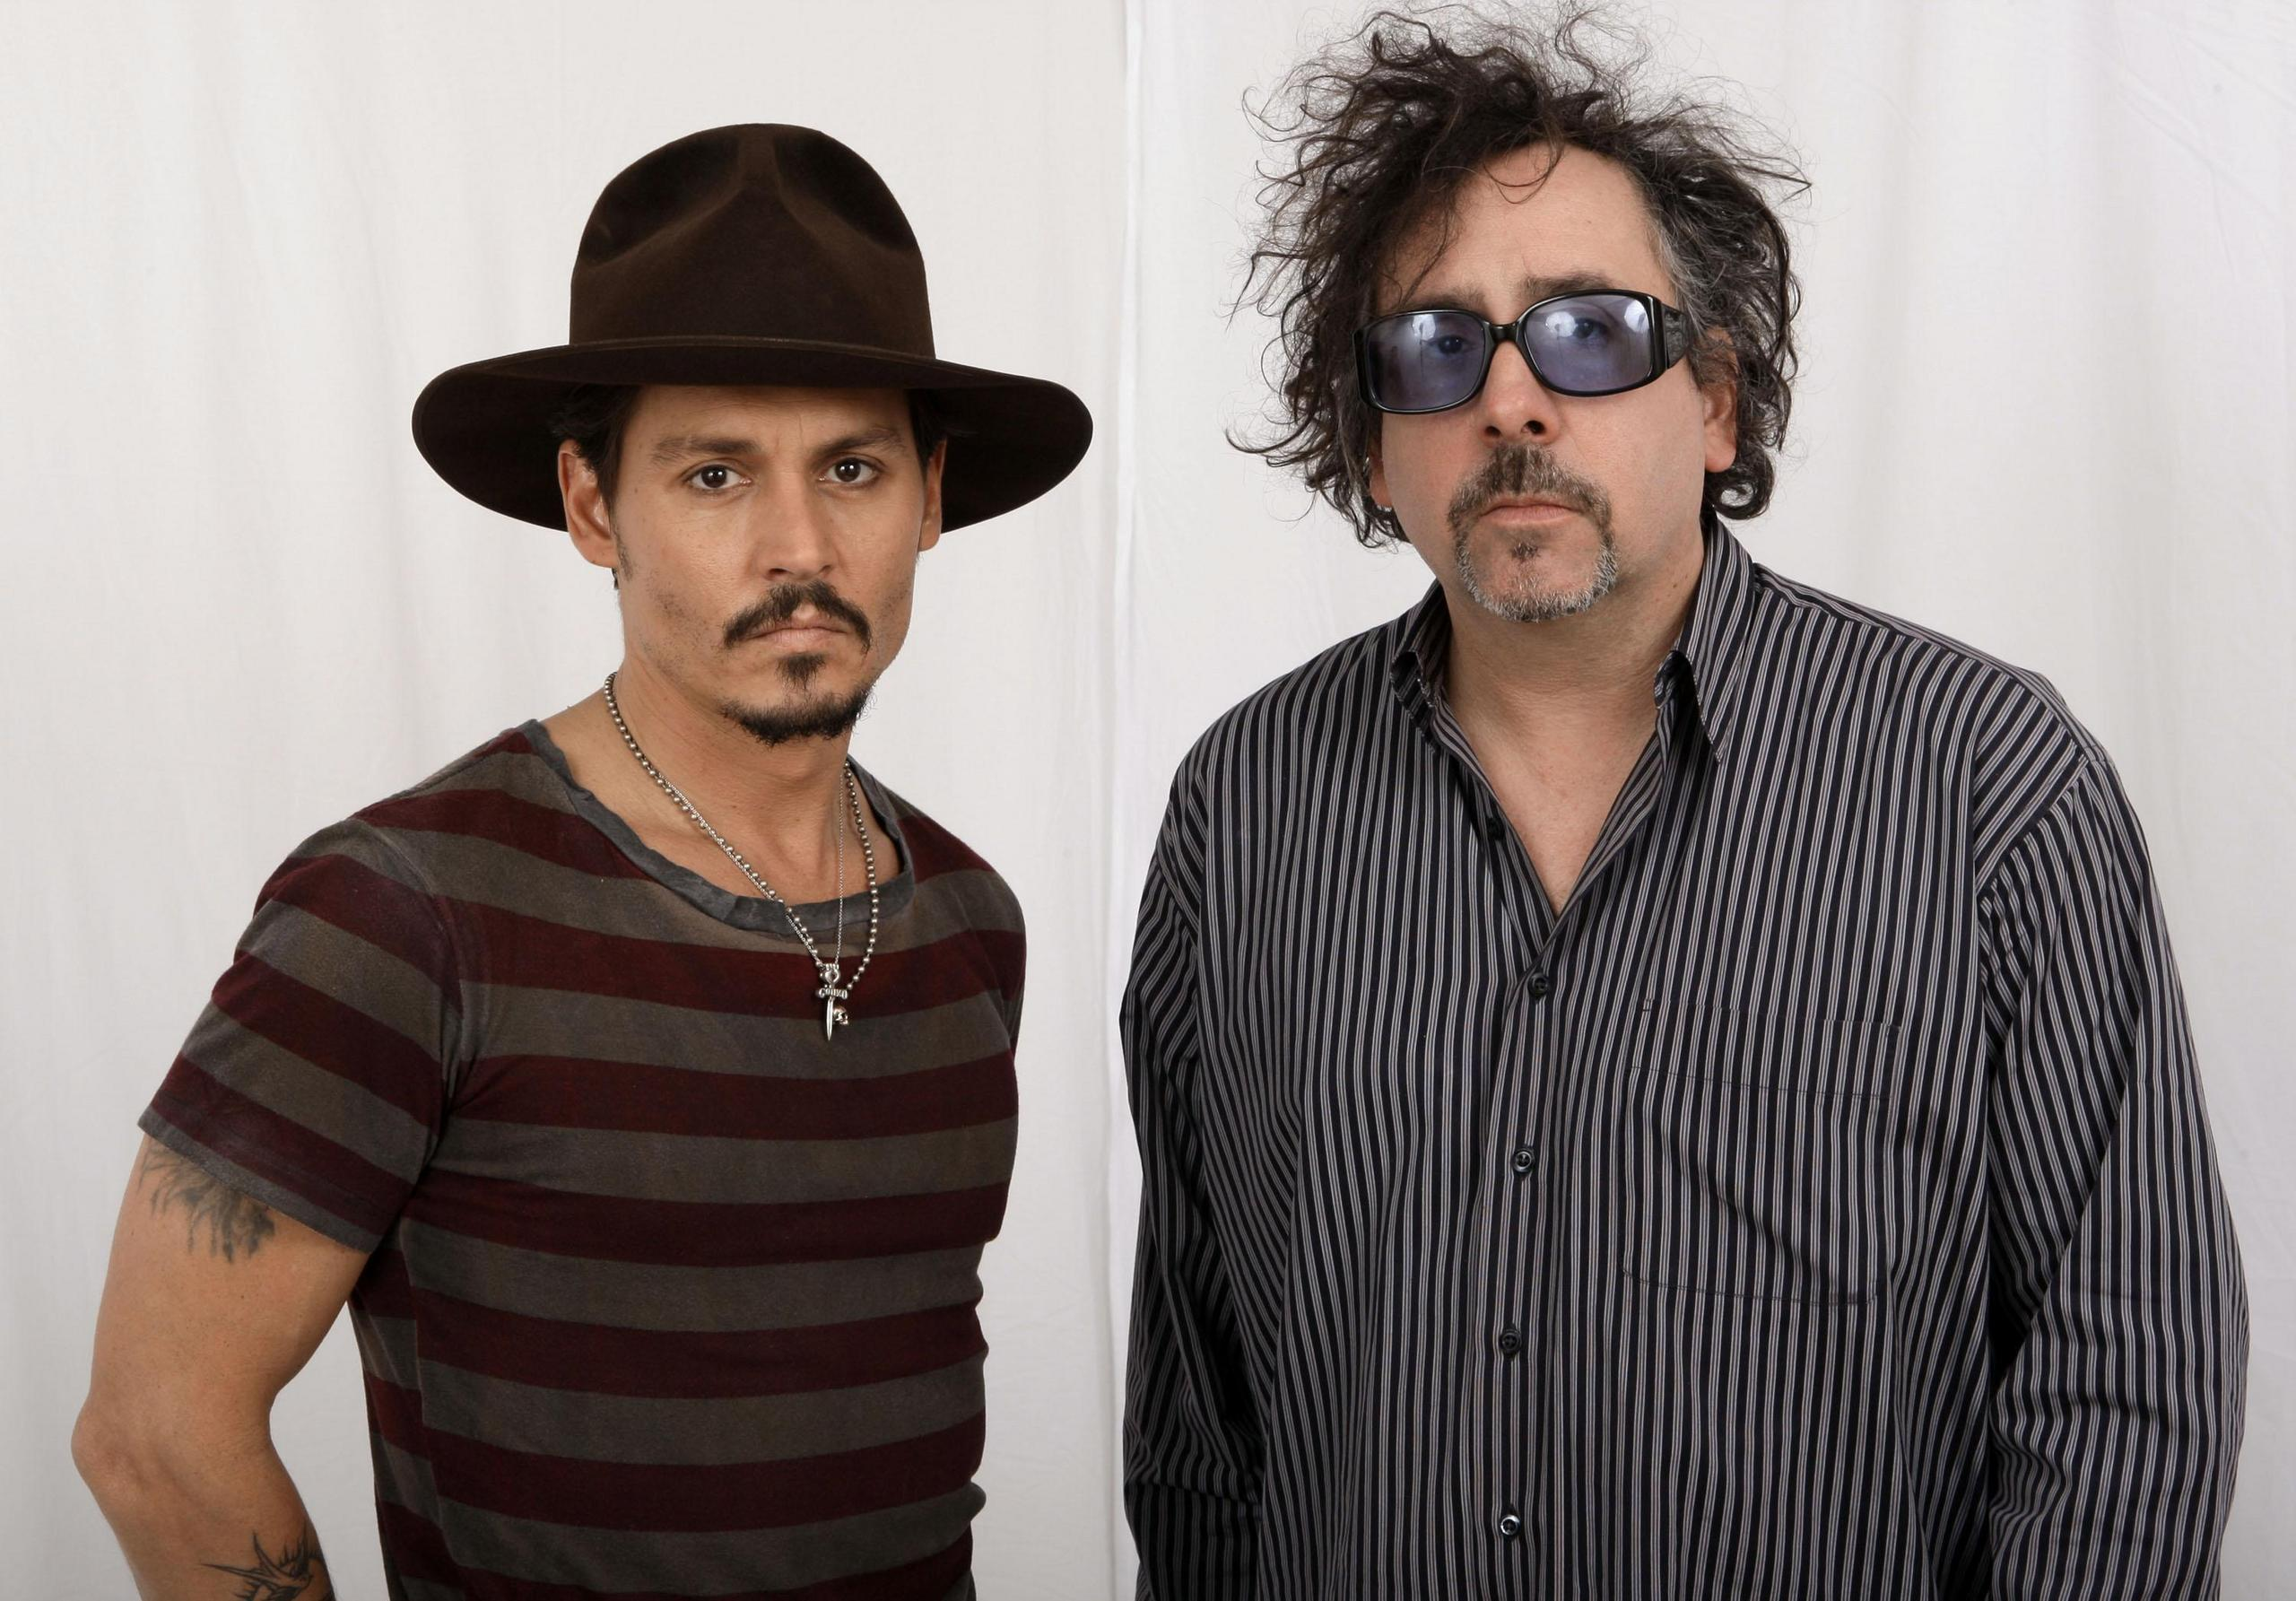 johnny and tim wallaper - photo #31